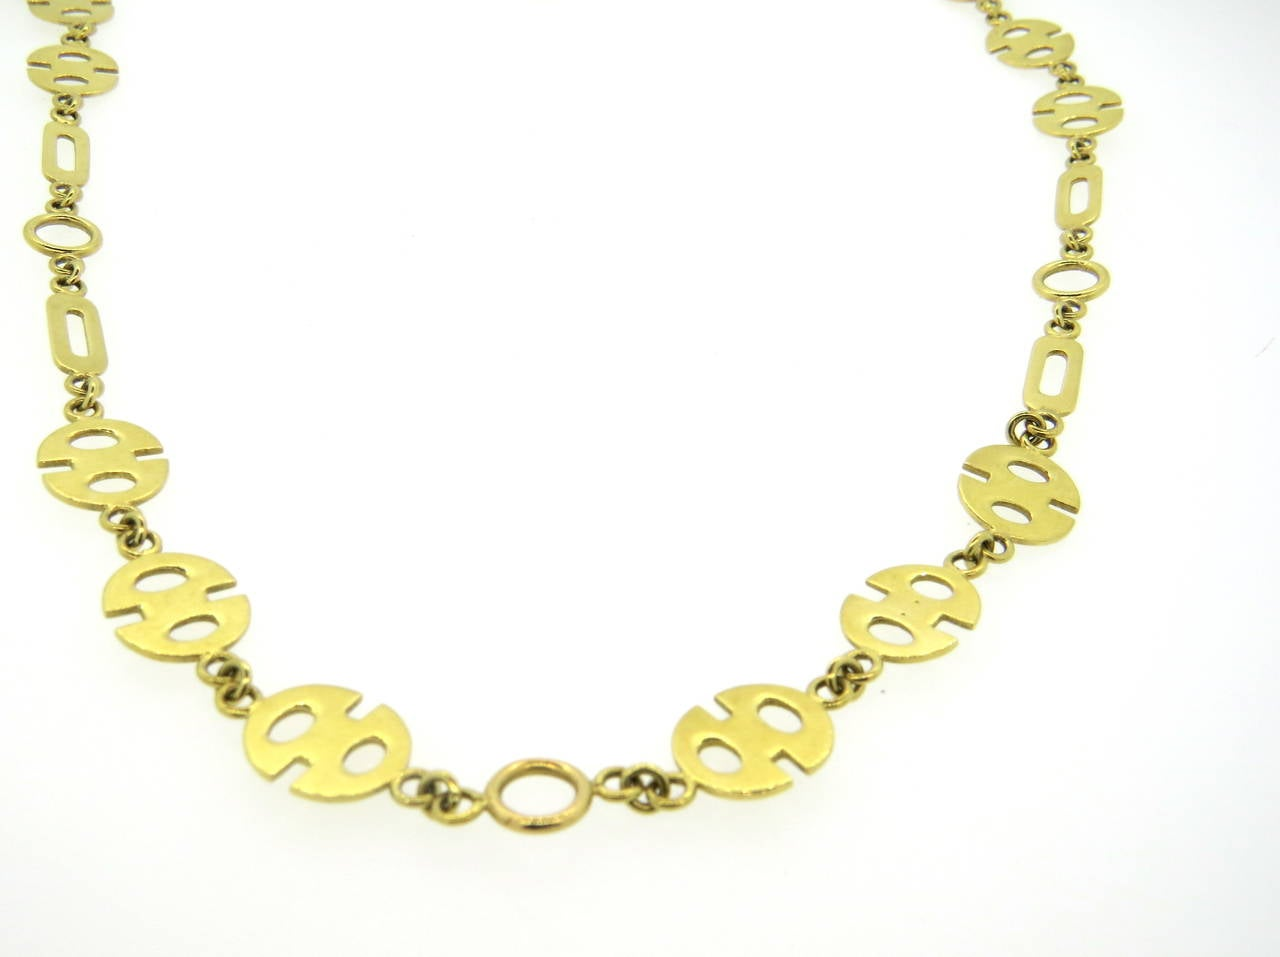 Women's 1970s Gold Link Necklace For Sale